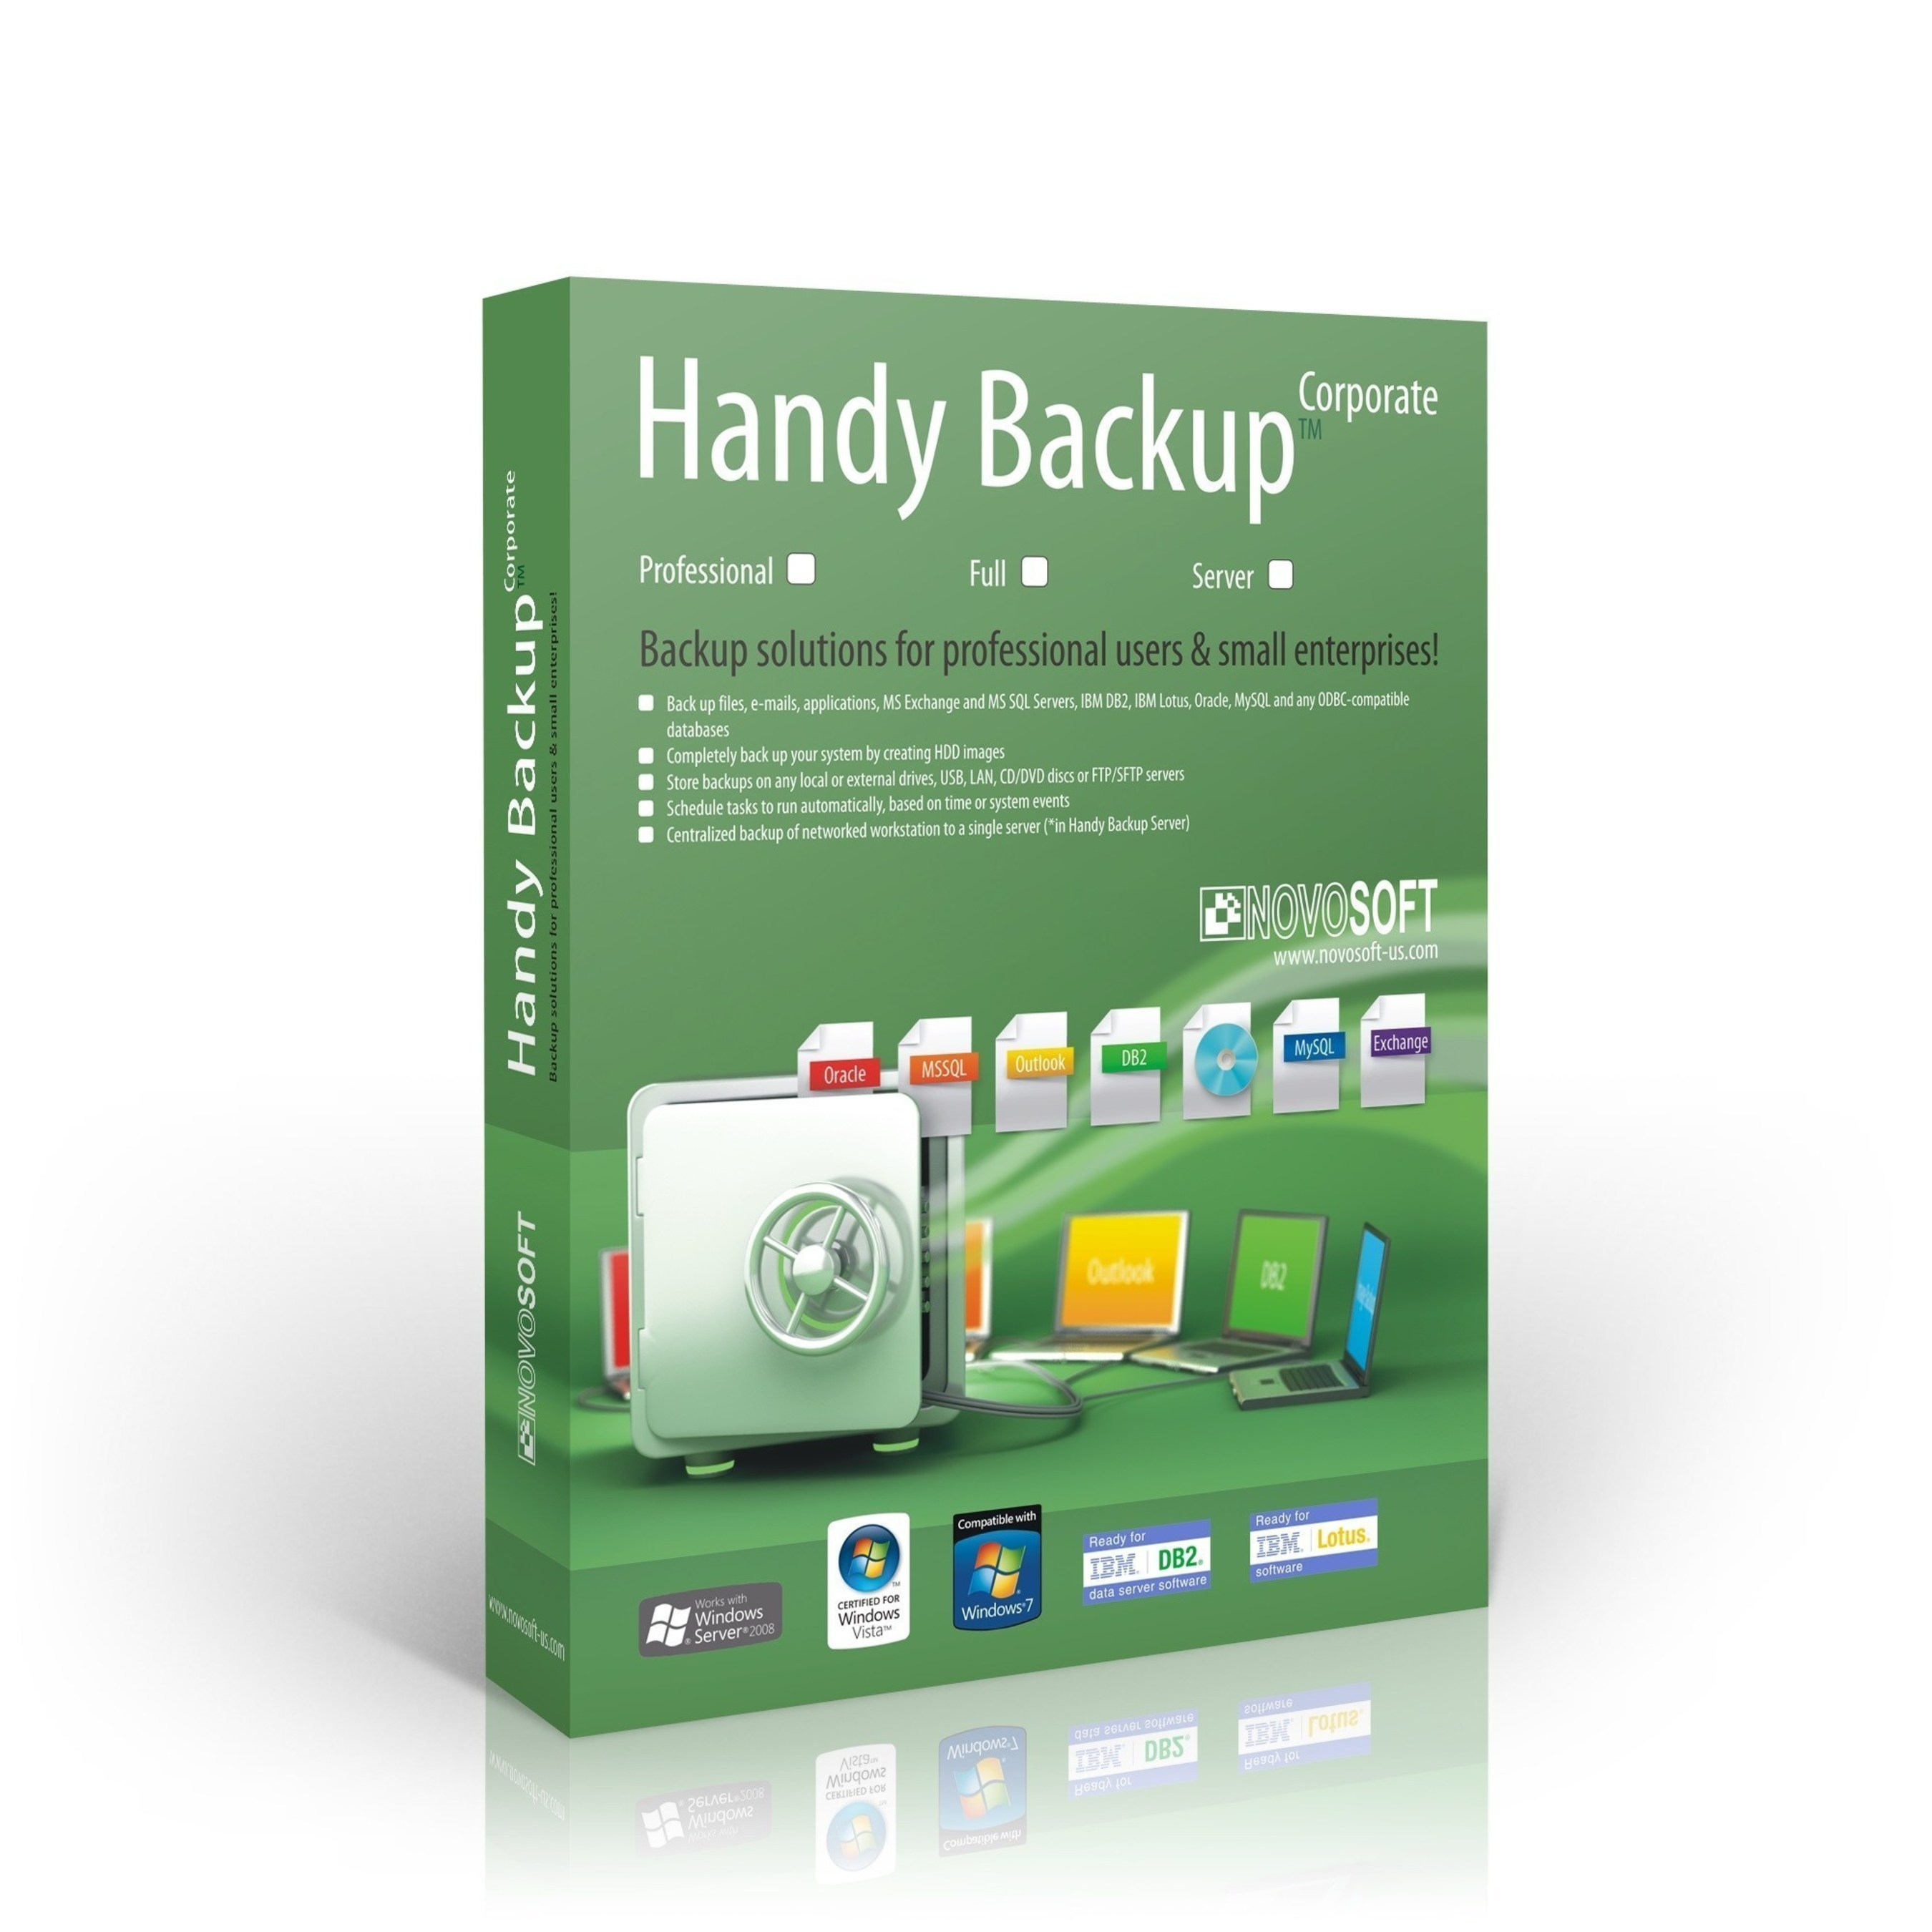 Handy Backup 7: New Server Backup Advantages for Working with Databases, VMs and Remote Machines